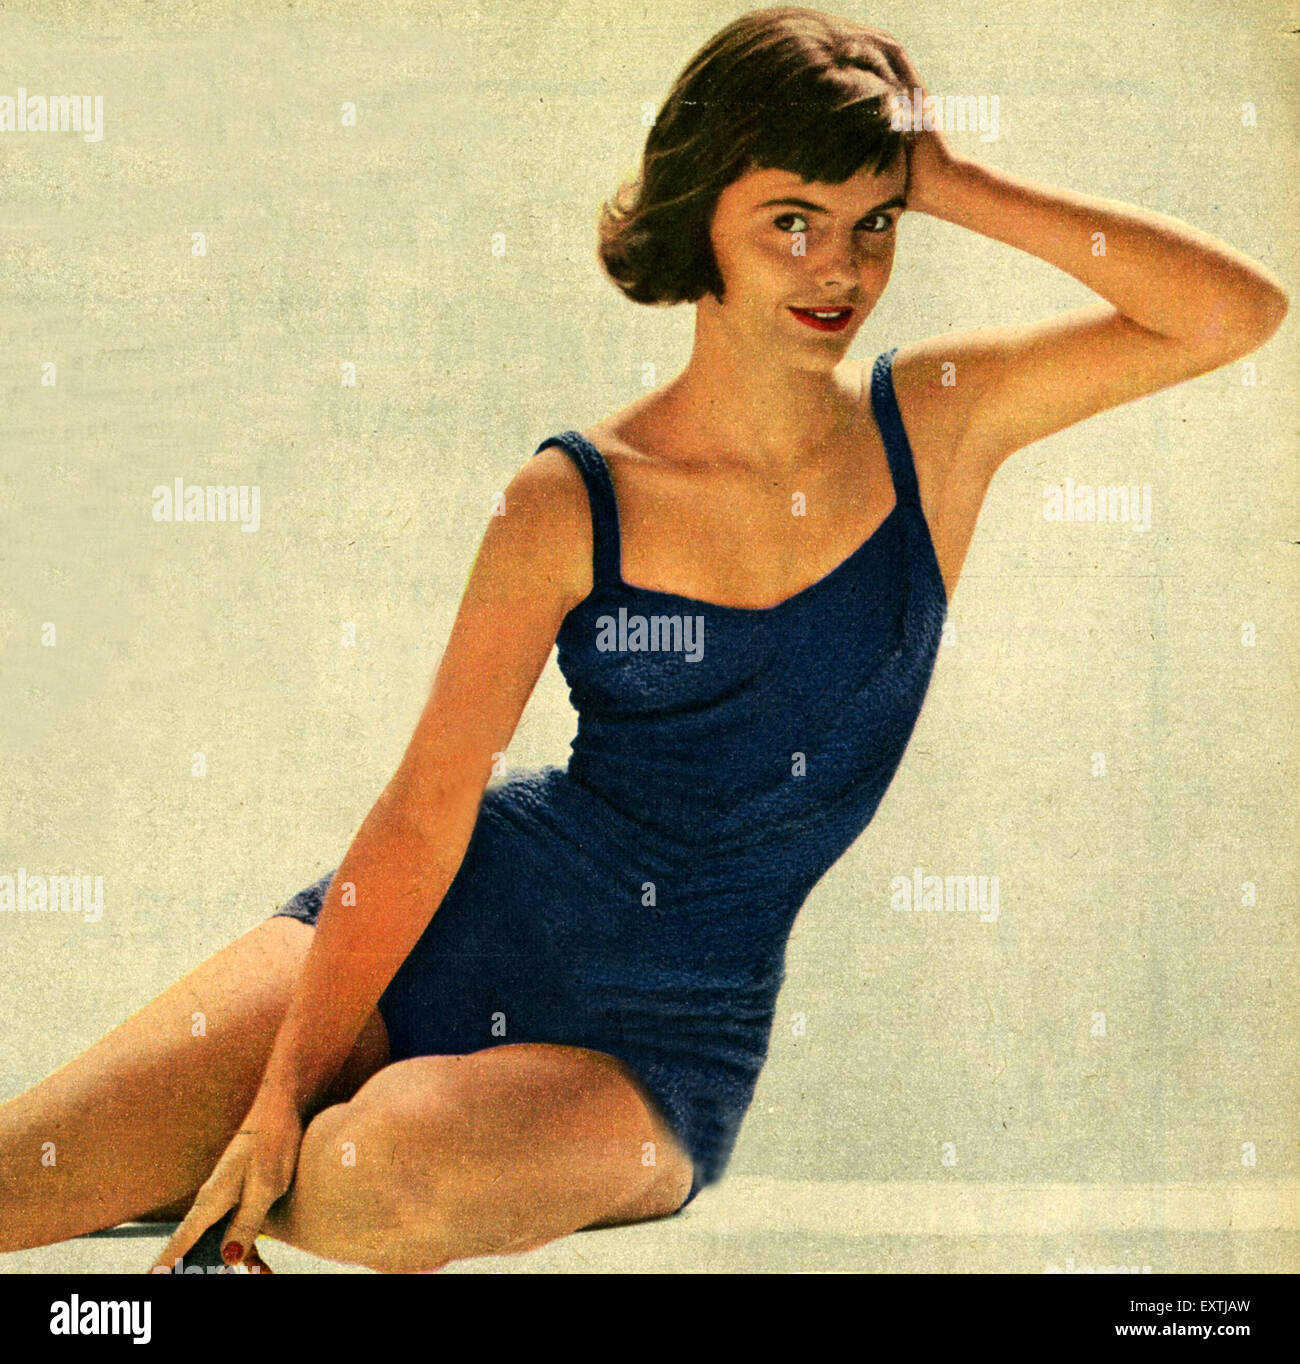 dc786f7b76f Swimwear 1950s Stock Photos & Swimwear 1950s Stock Images - Alamy